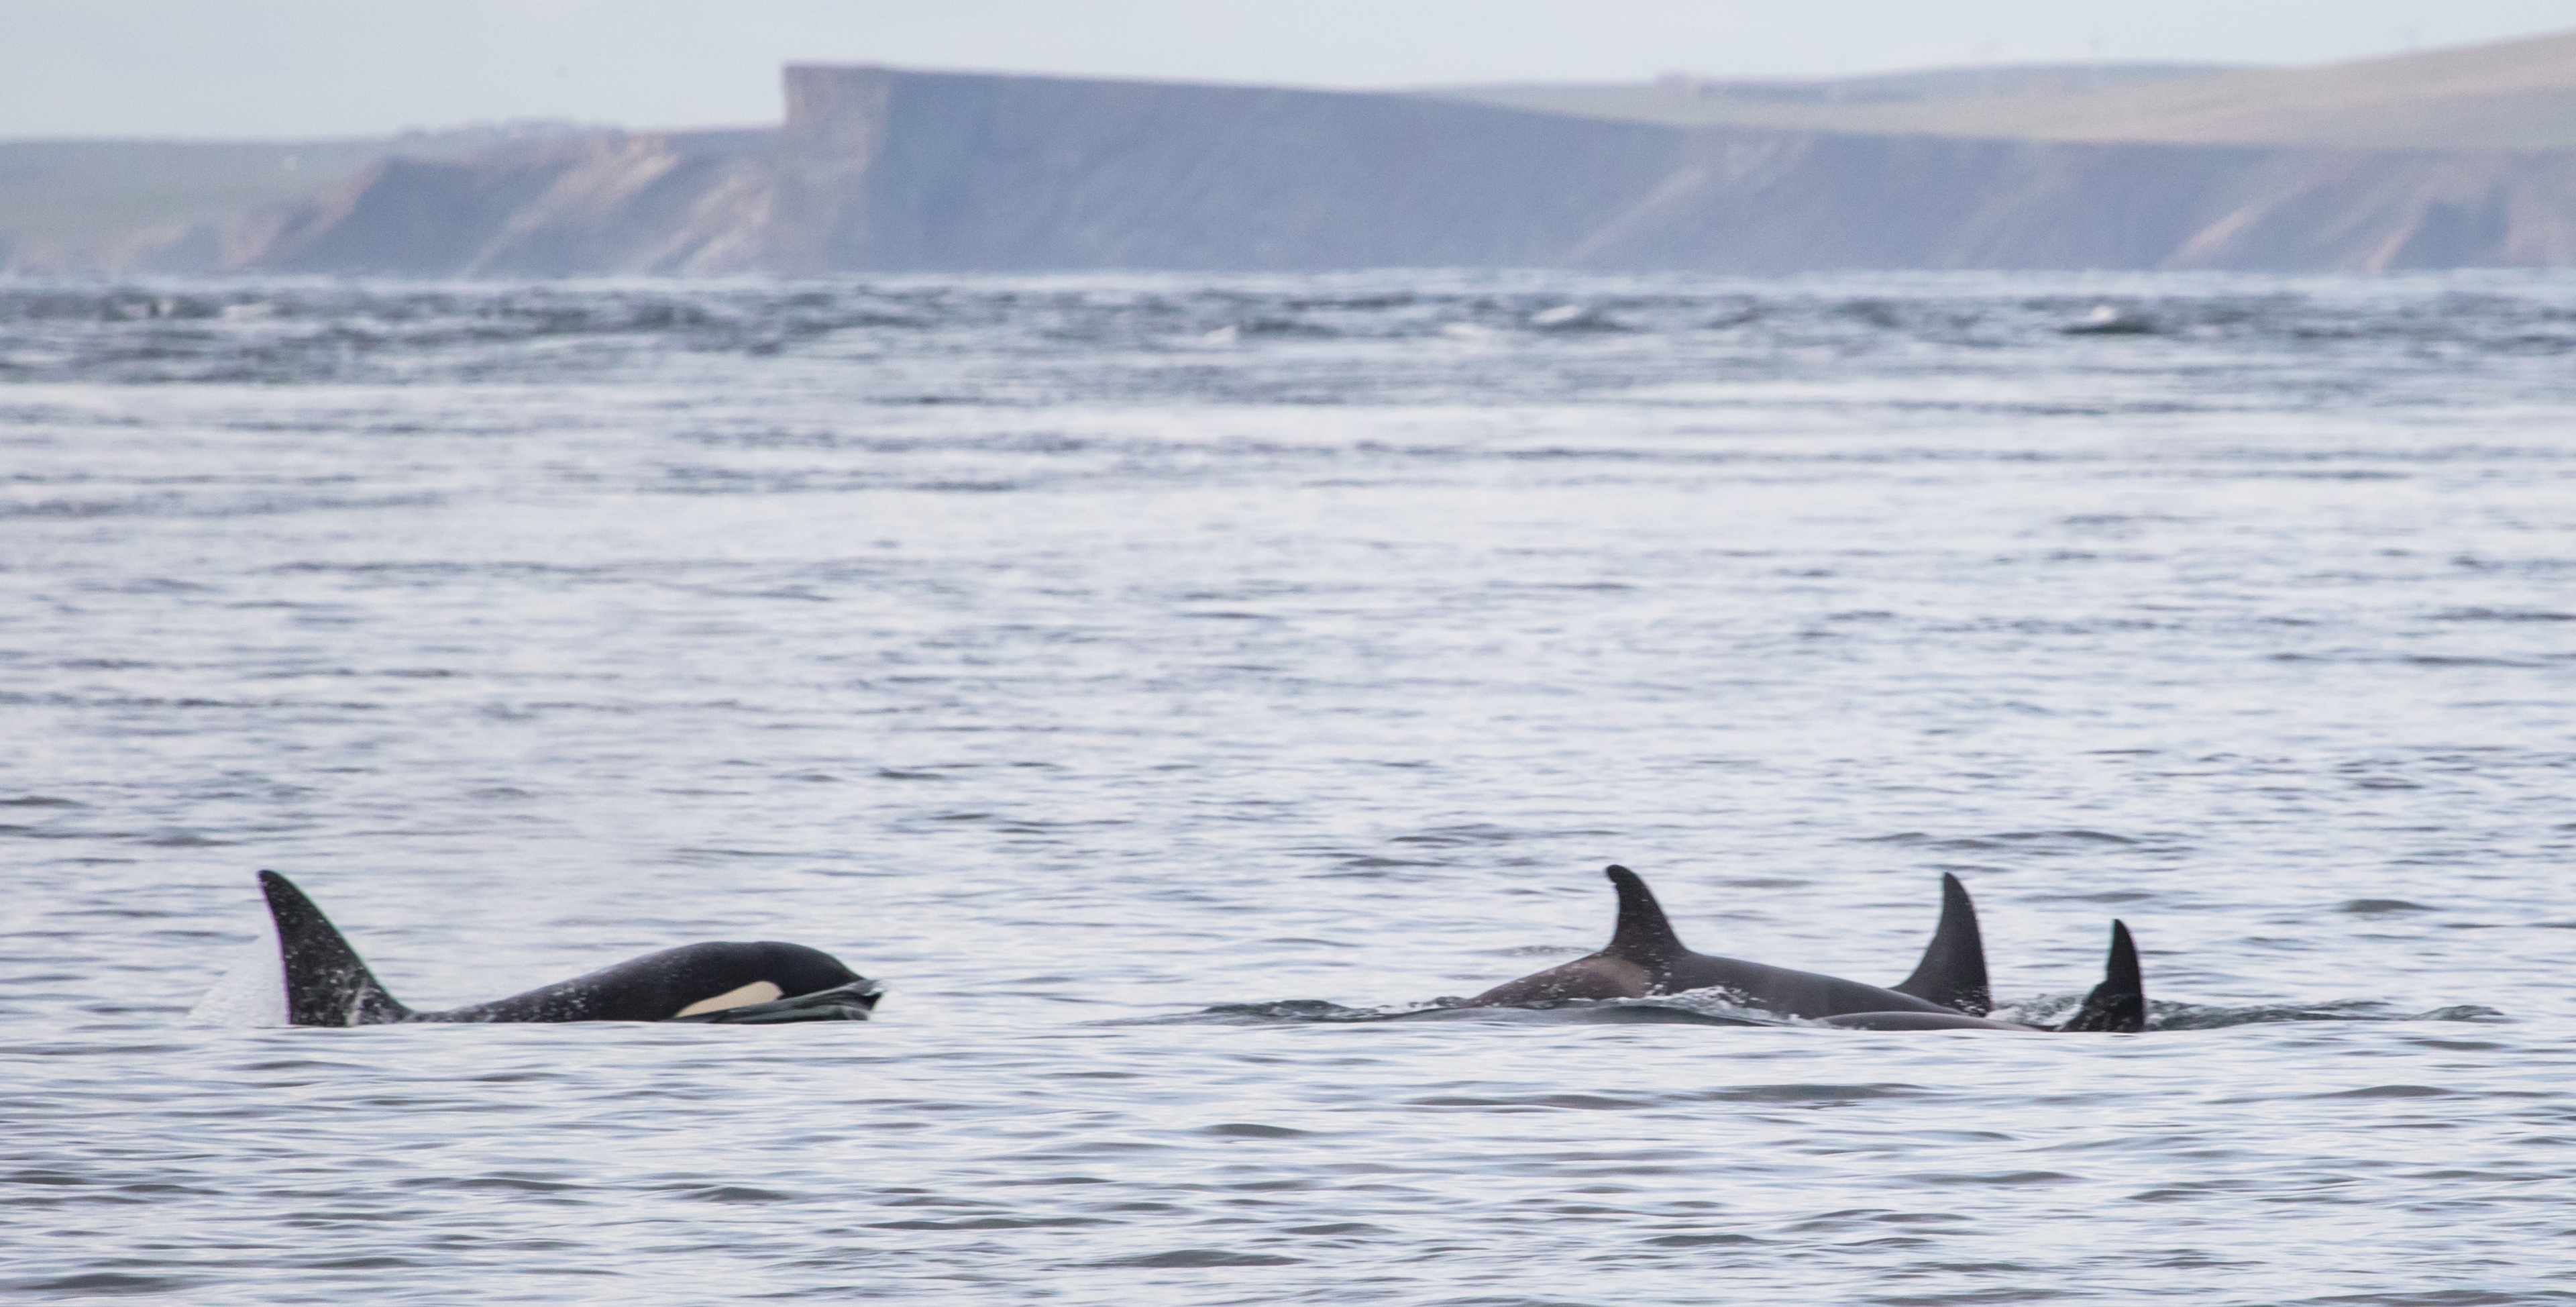 Killer whales playing off the coast of Scotland. Picture credit: Karen Munro